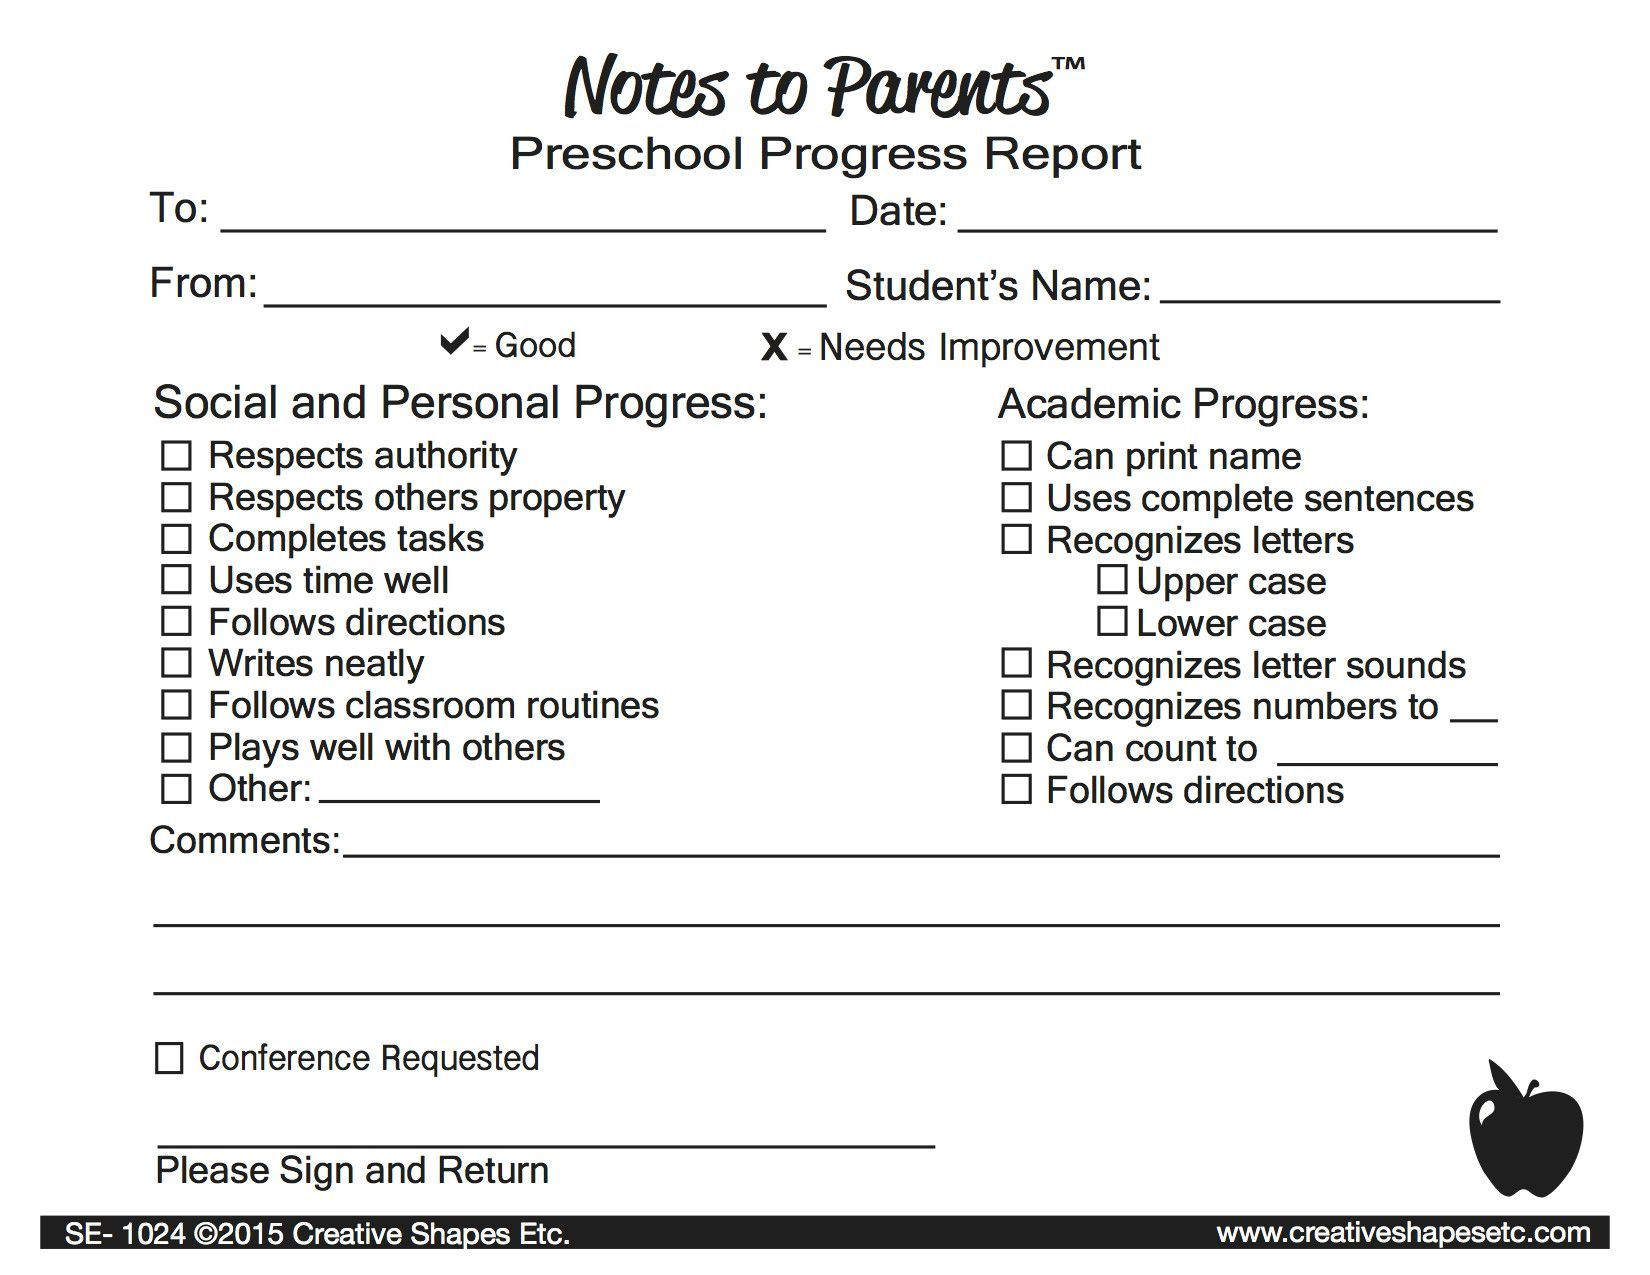 notes to parents u2122